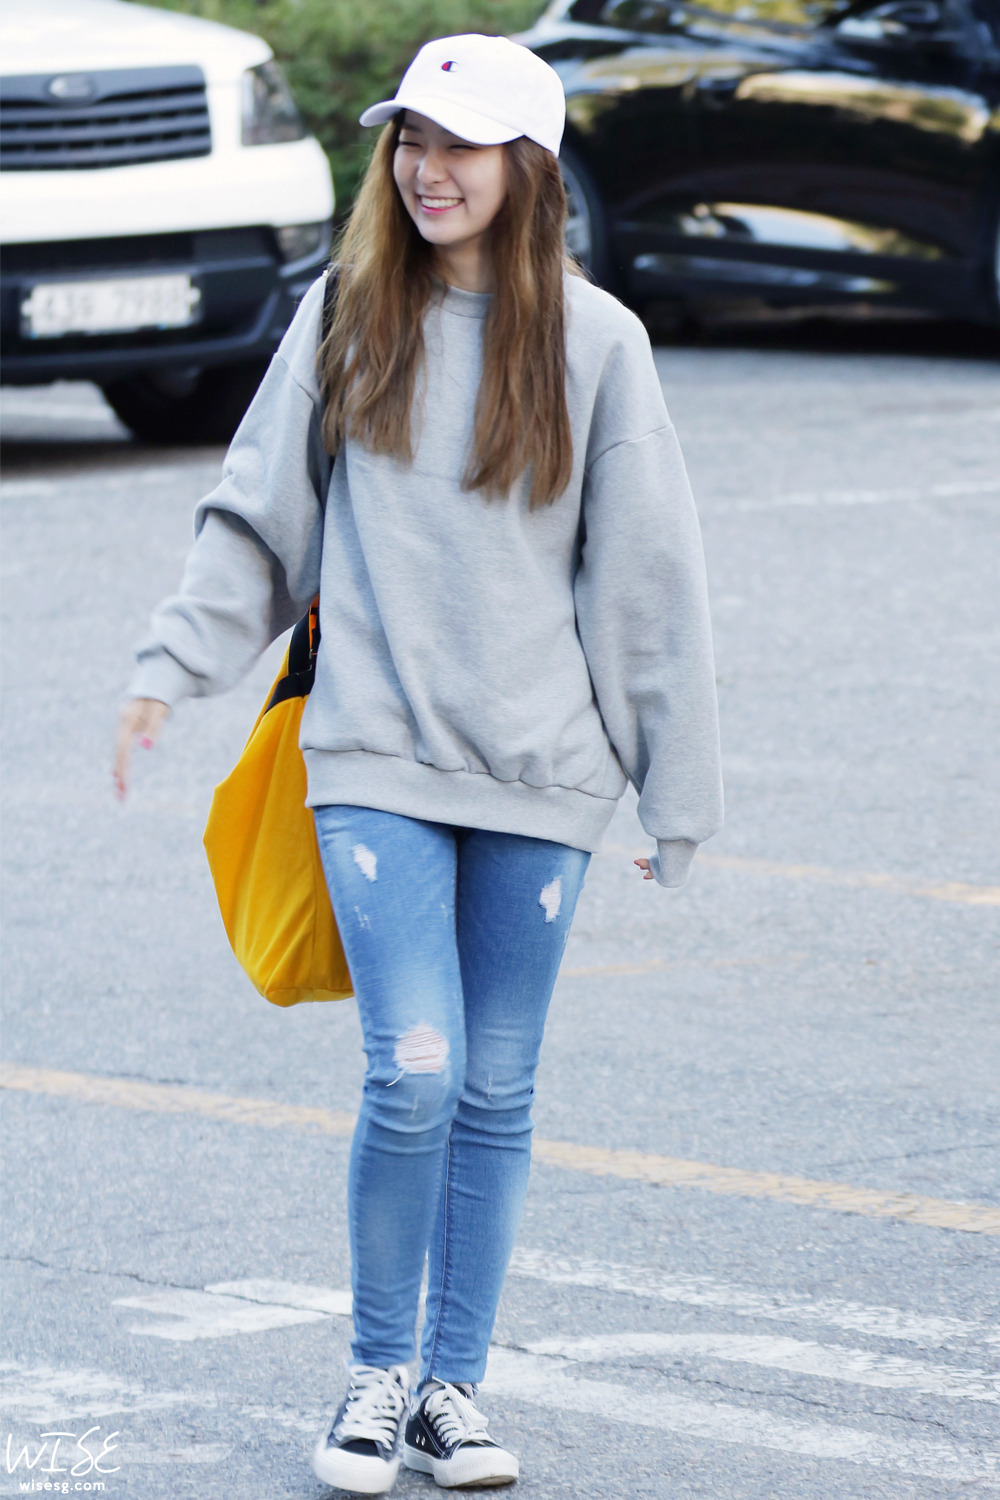 velvet seulgi airport kpop outfits korean officialkoreanfashion casual idols inspiration story tr